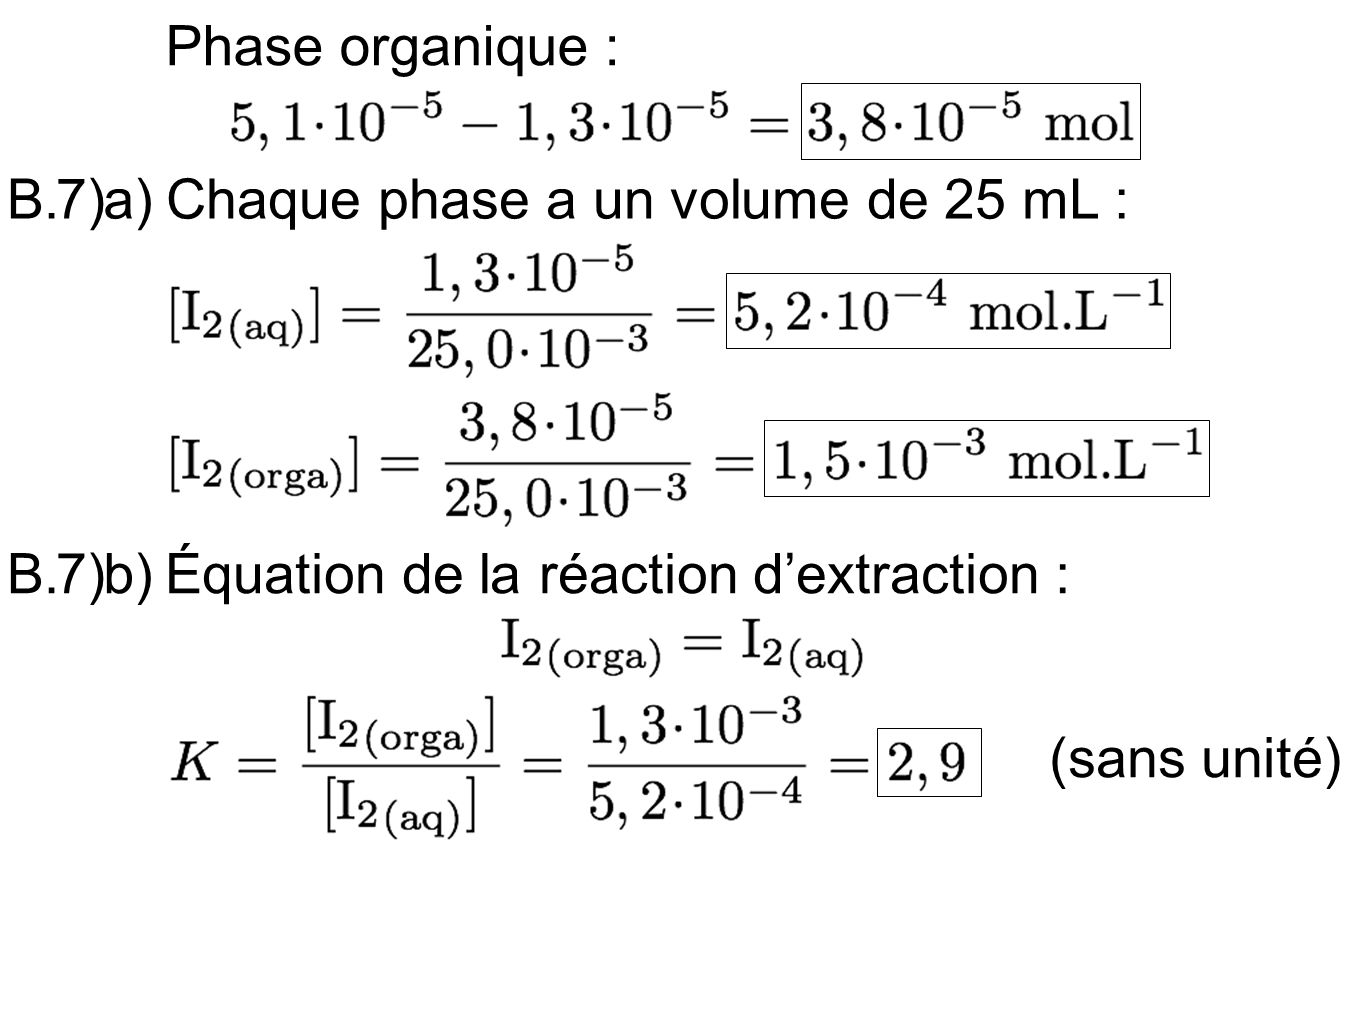 Phase organique : 7) a) B. Chaque phase a un volume de 25 mL : 7) b) B. Équation de la réaction d'extraction :